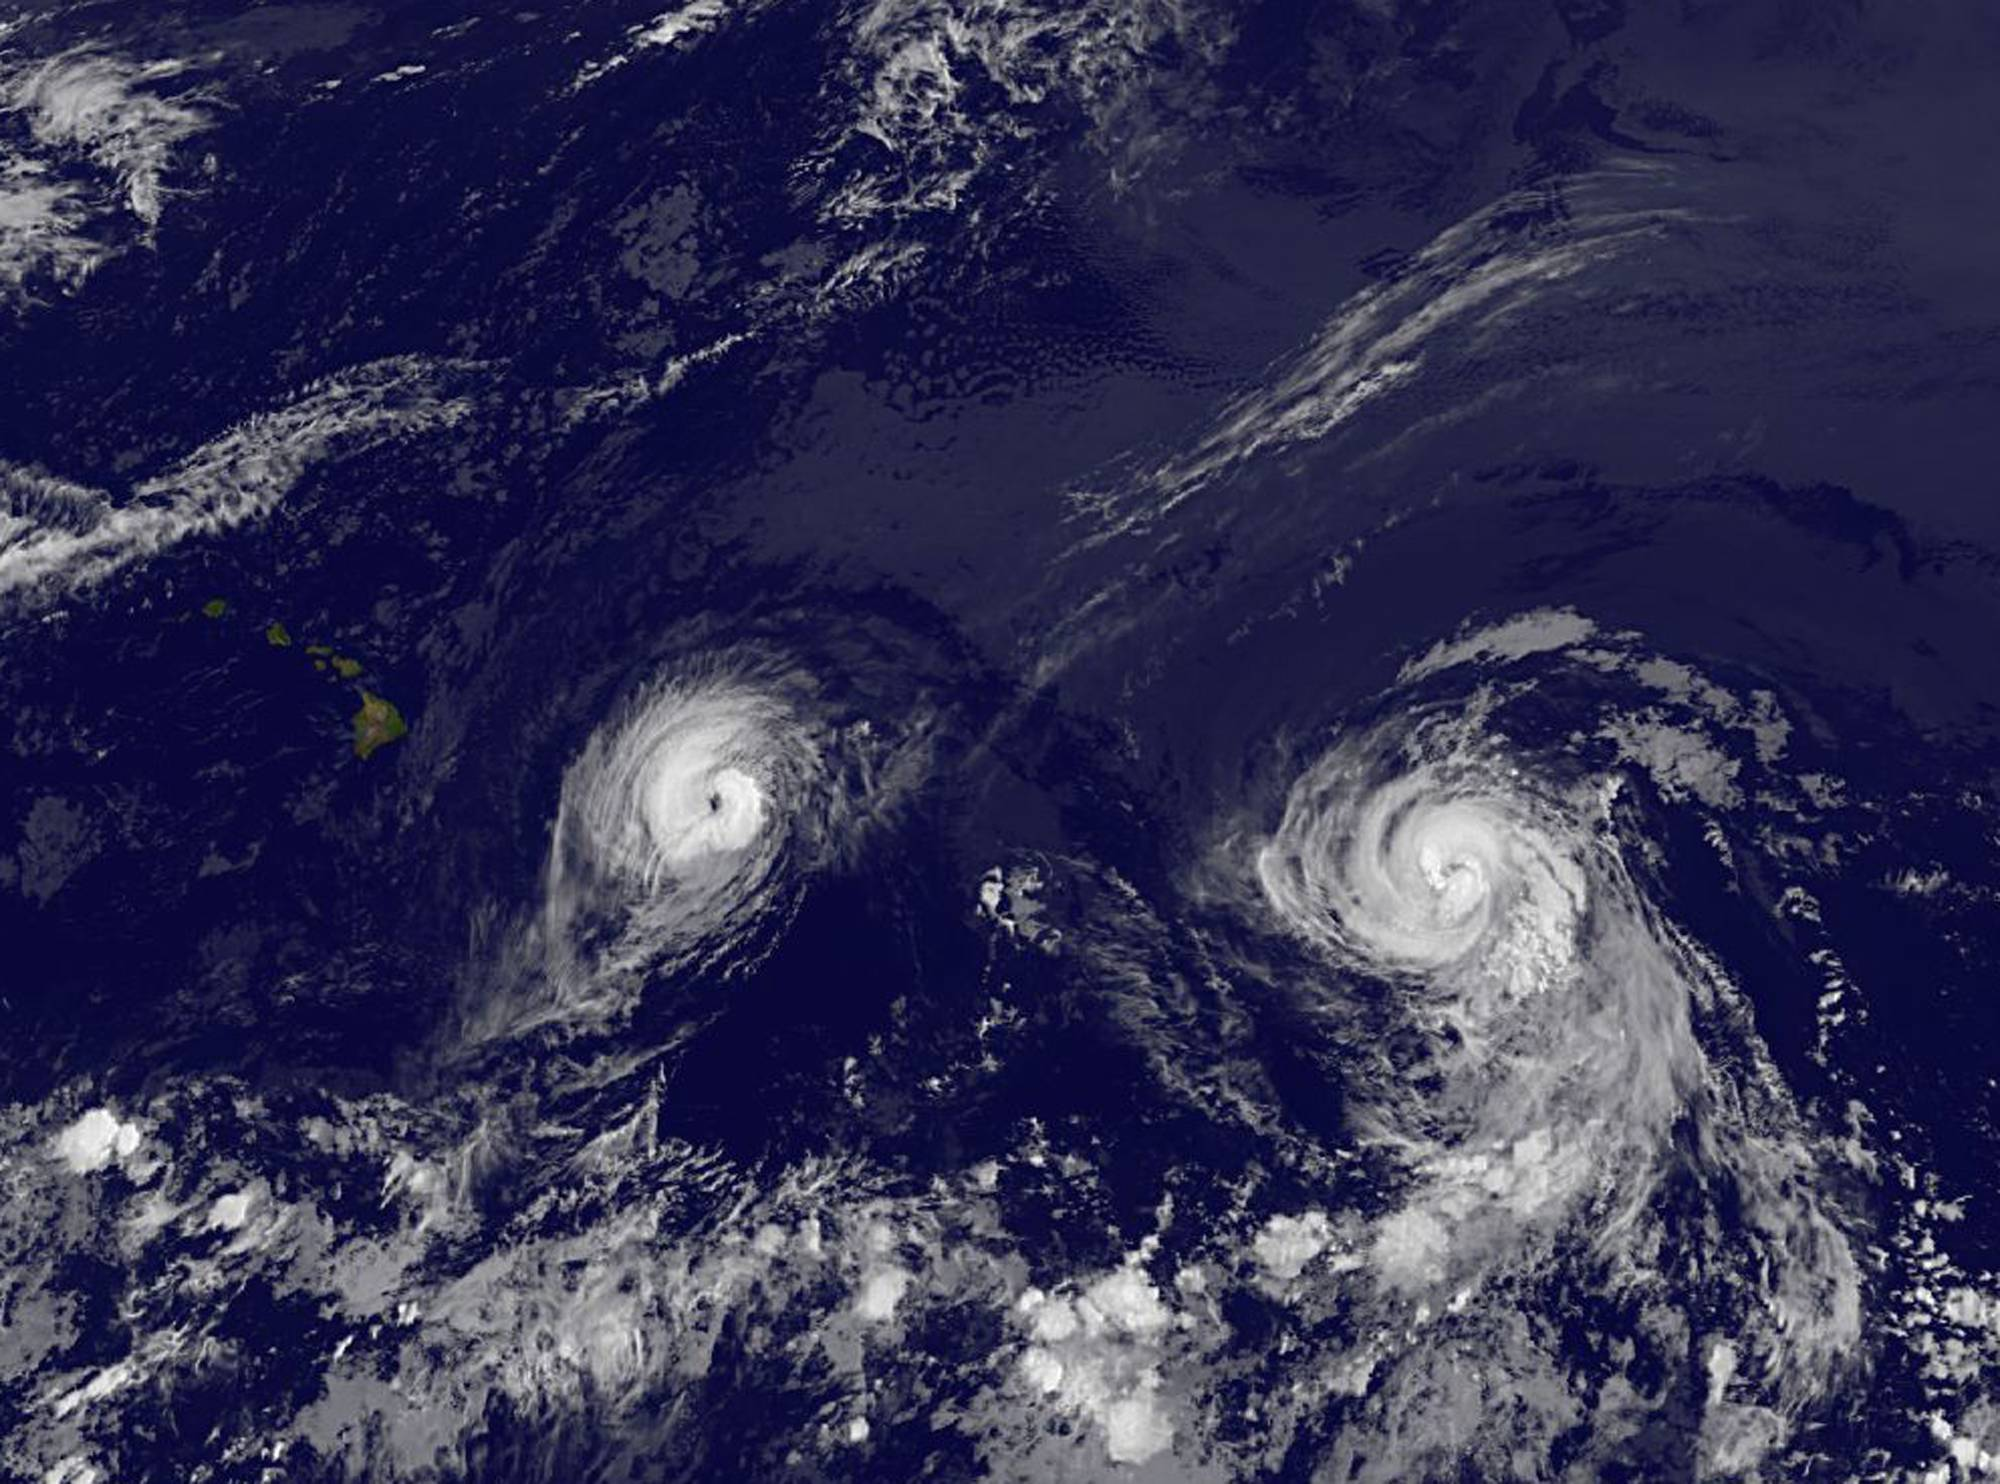 This image provided by NOAA taken Thursday Aug. 7, 2014 at 2 a.m. EDT shows Hurricane Iselle, left and Hurricane Julio. Iselle was supposed to weaken as it slowly trudged west across the Pacific. It didn't — and now Hawaii is poised to take its first direct hurricane hit in 22 years. The center of Hurricane Iselle is expected to pass very near or over the Big Island Thursday night and just south of the smaller islands Friday. Some weakening is forecast during the next 48 hours however Iselle is still expected to be near hurricane strength as it impacts the Big Island.